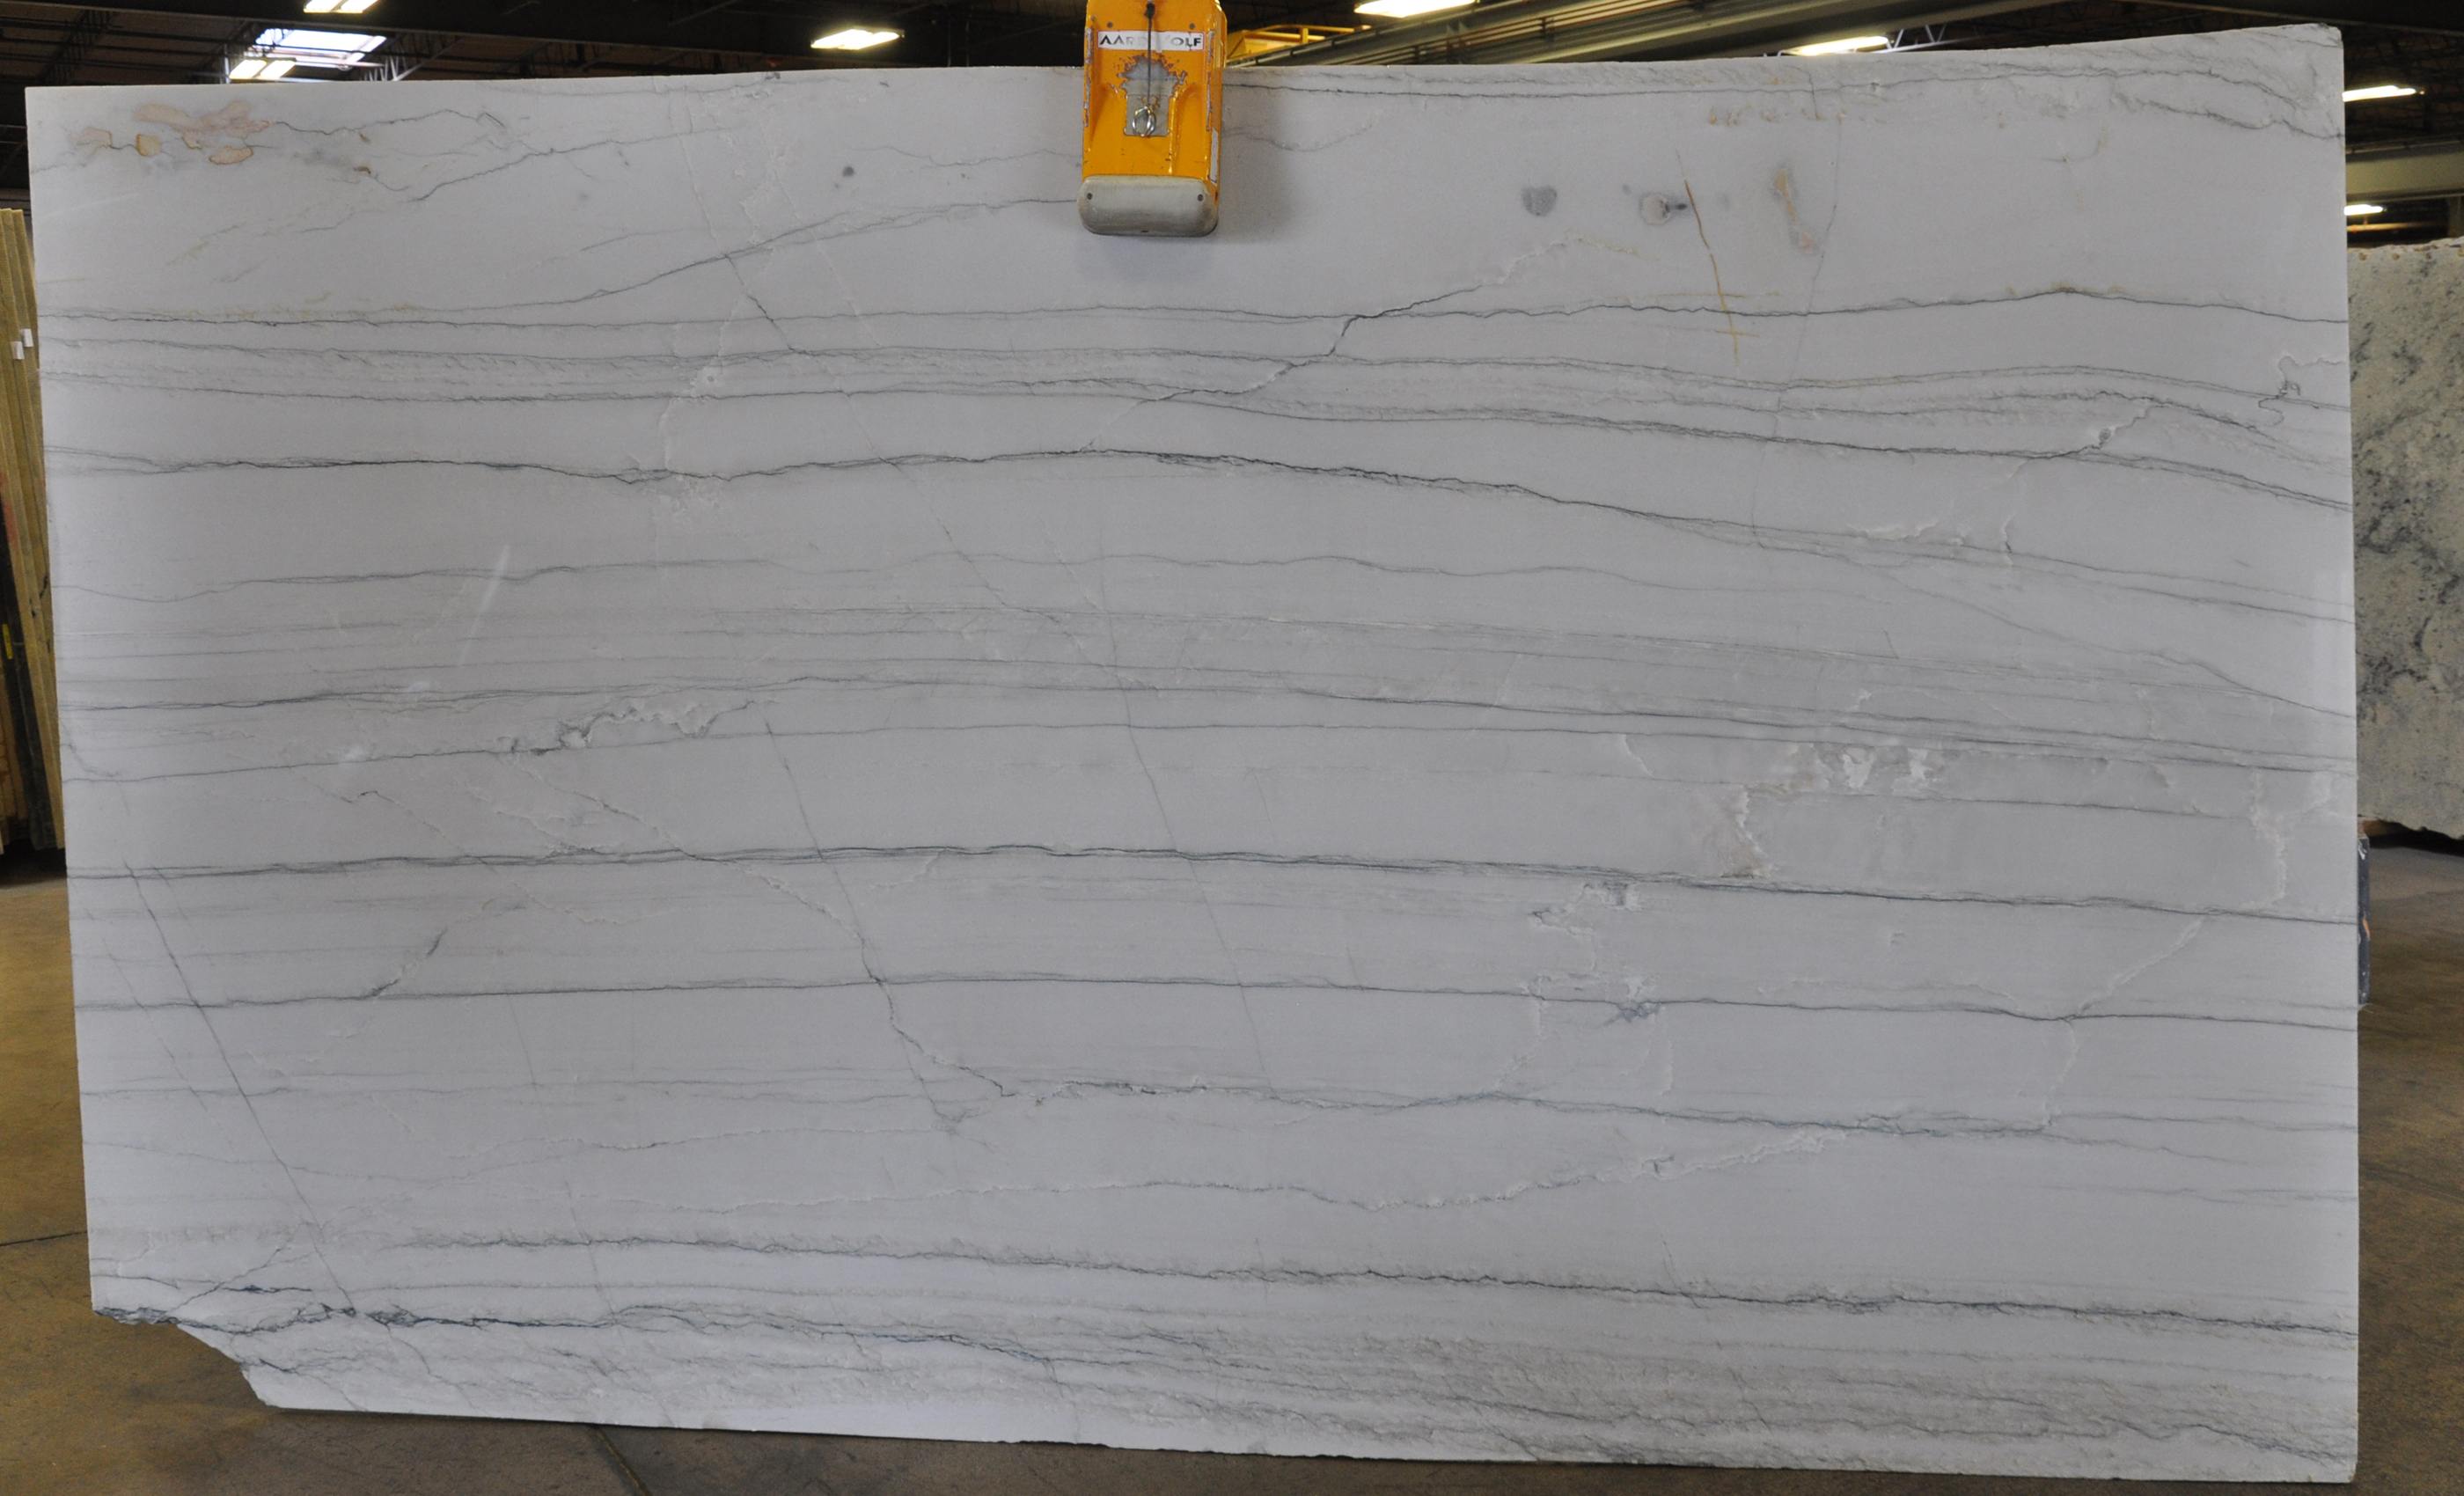 Leathered Granite Pros and Cons | Taj Mahal Quartzite Cost | Macaubas Quartzite